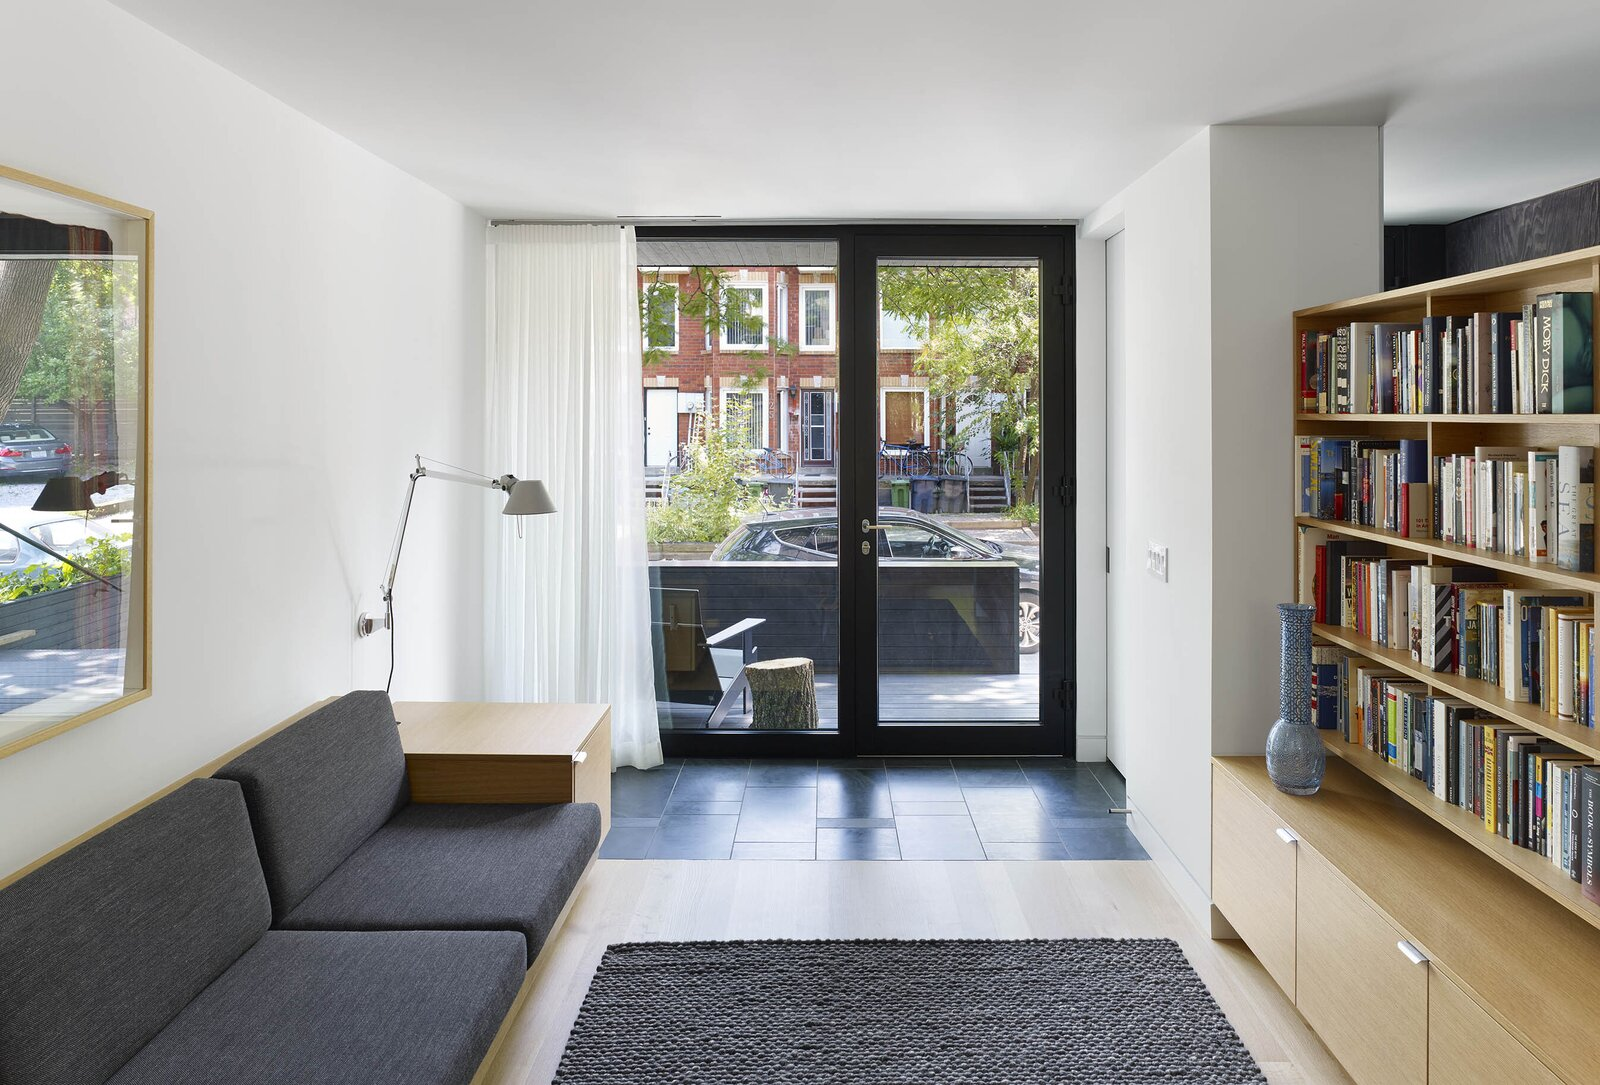 Living Room, Rug Floor, Light Hardwood Floor, Wall Lighting, Shelves, Sofa, and Storage  Photo 6 of 16 in An Architect Couple Turn an Urban Eyesore Into a Home That's Both Peaceful and Playful from Bellwoods Lodge